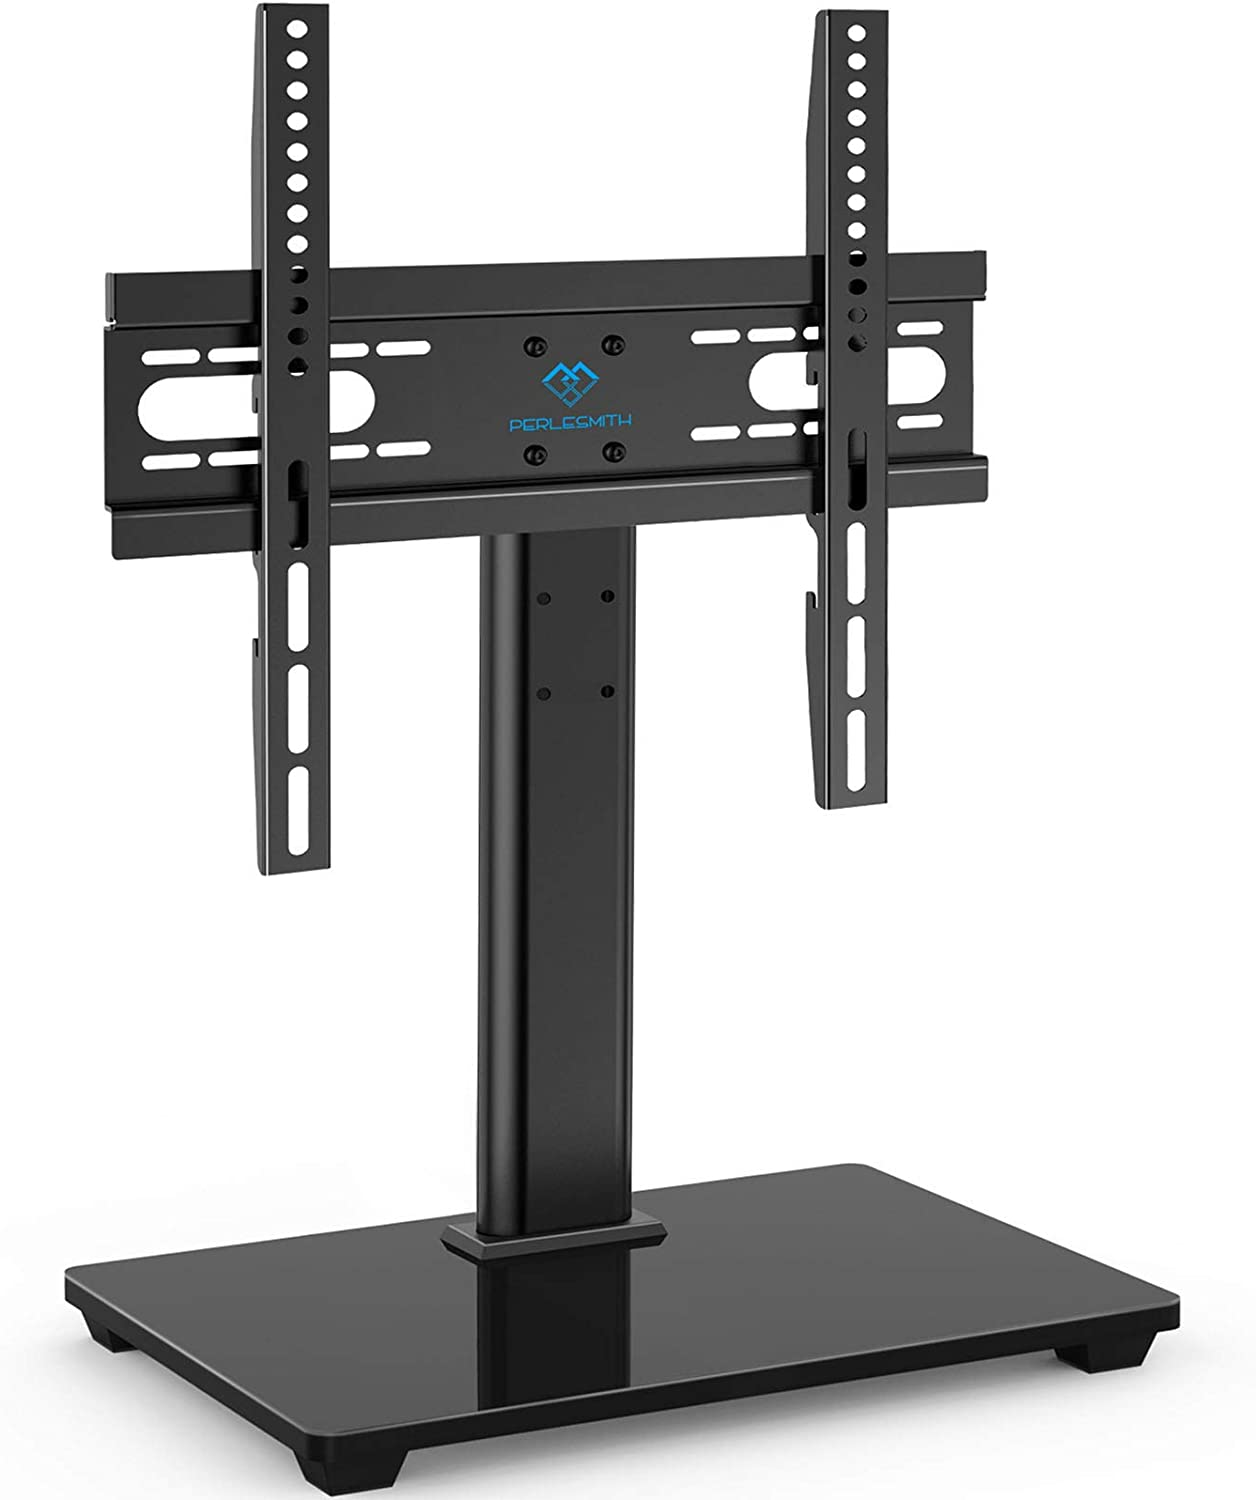 PERLESMITH Universal TV Stand - Table Top TV Stand for 37-55 inch LCD LED TVs - Height Adjustable TV Base Stand with Tempered Glass Base & Wire Management, VESA 400x400mm: Electronics